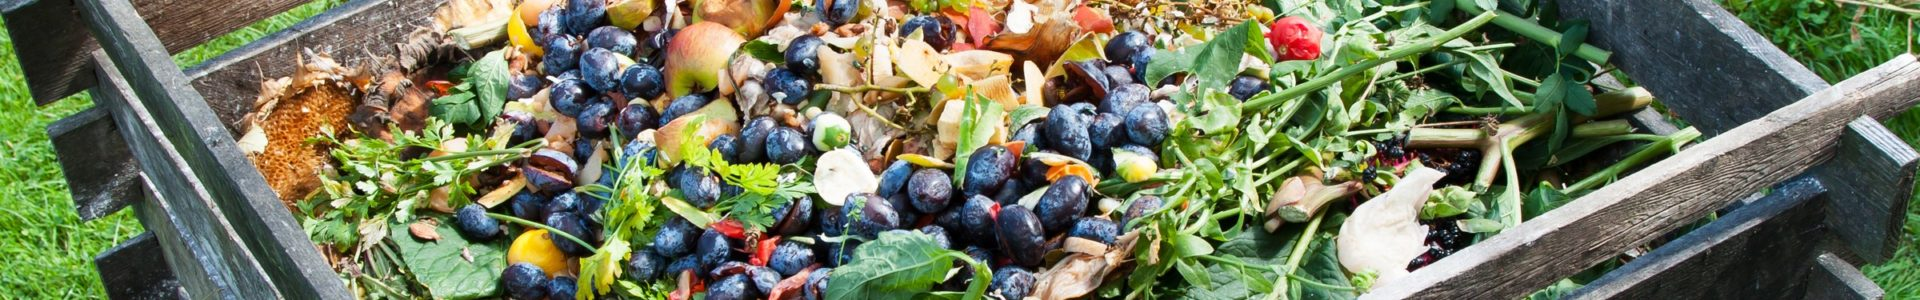 The dos and don'ts of composting